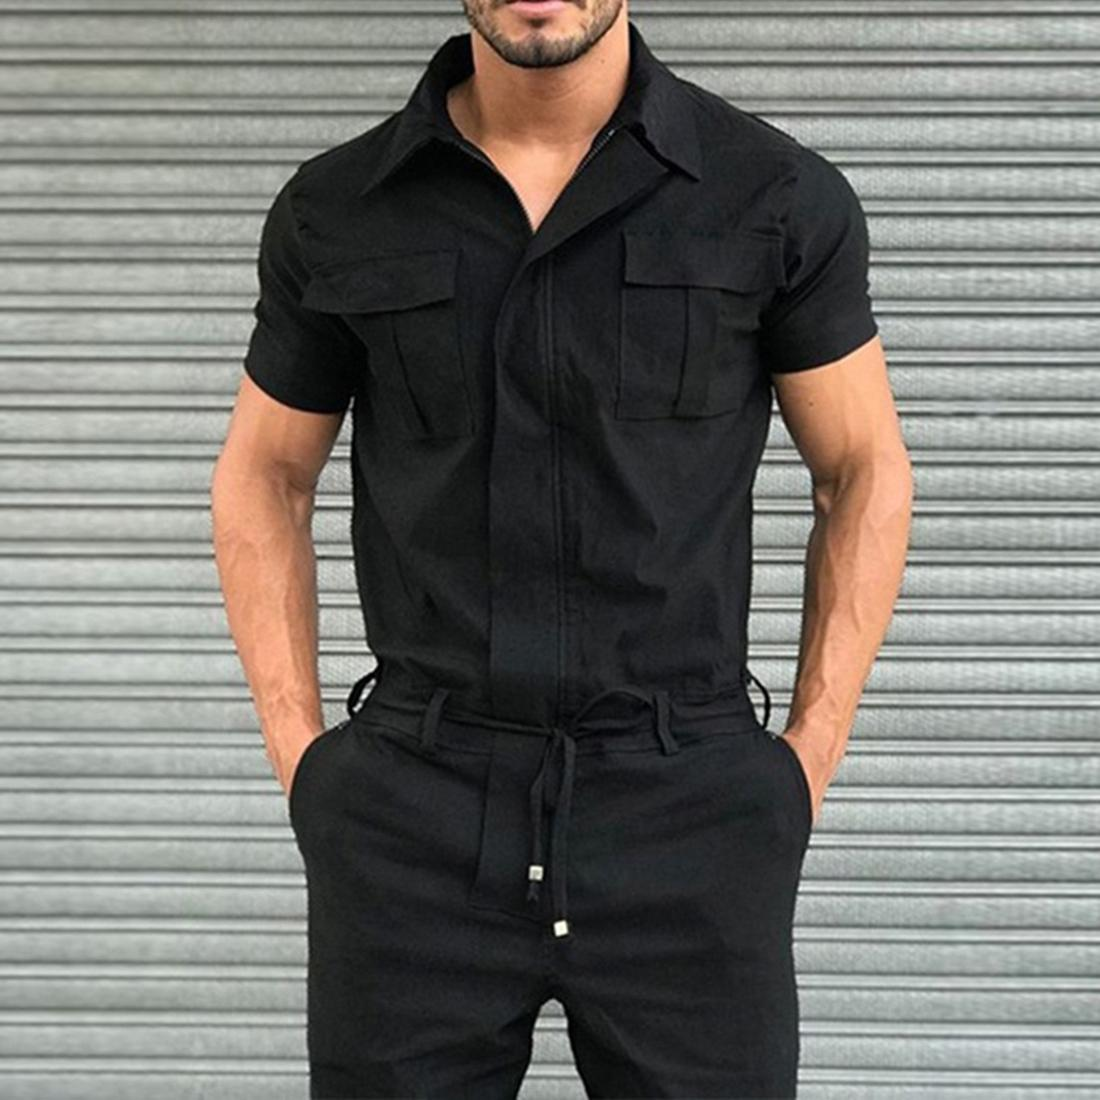 2020 Cargo Jumpsuit Mens Overalls Casual Notched Short Sleeve Rompers Solid Color Pocket Fashion Work Wear Streetwear 1109